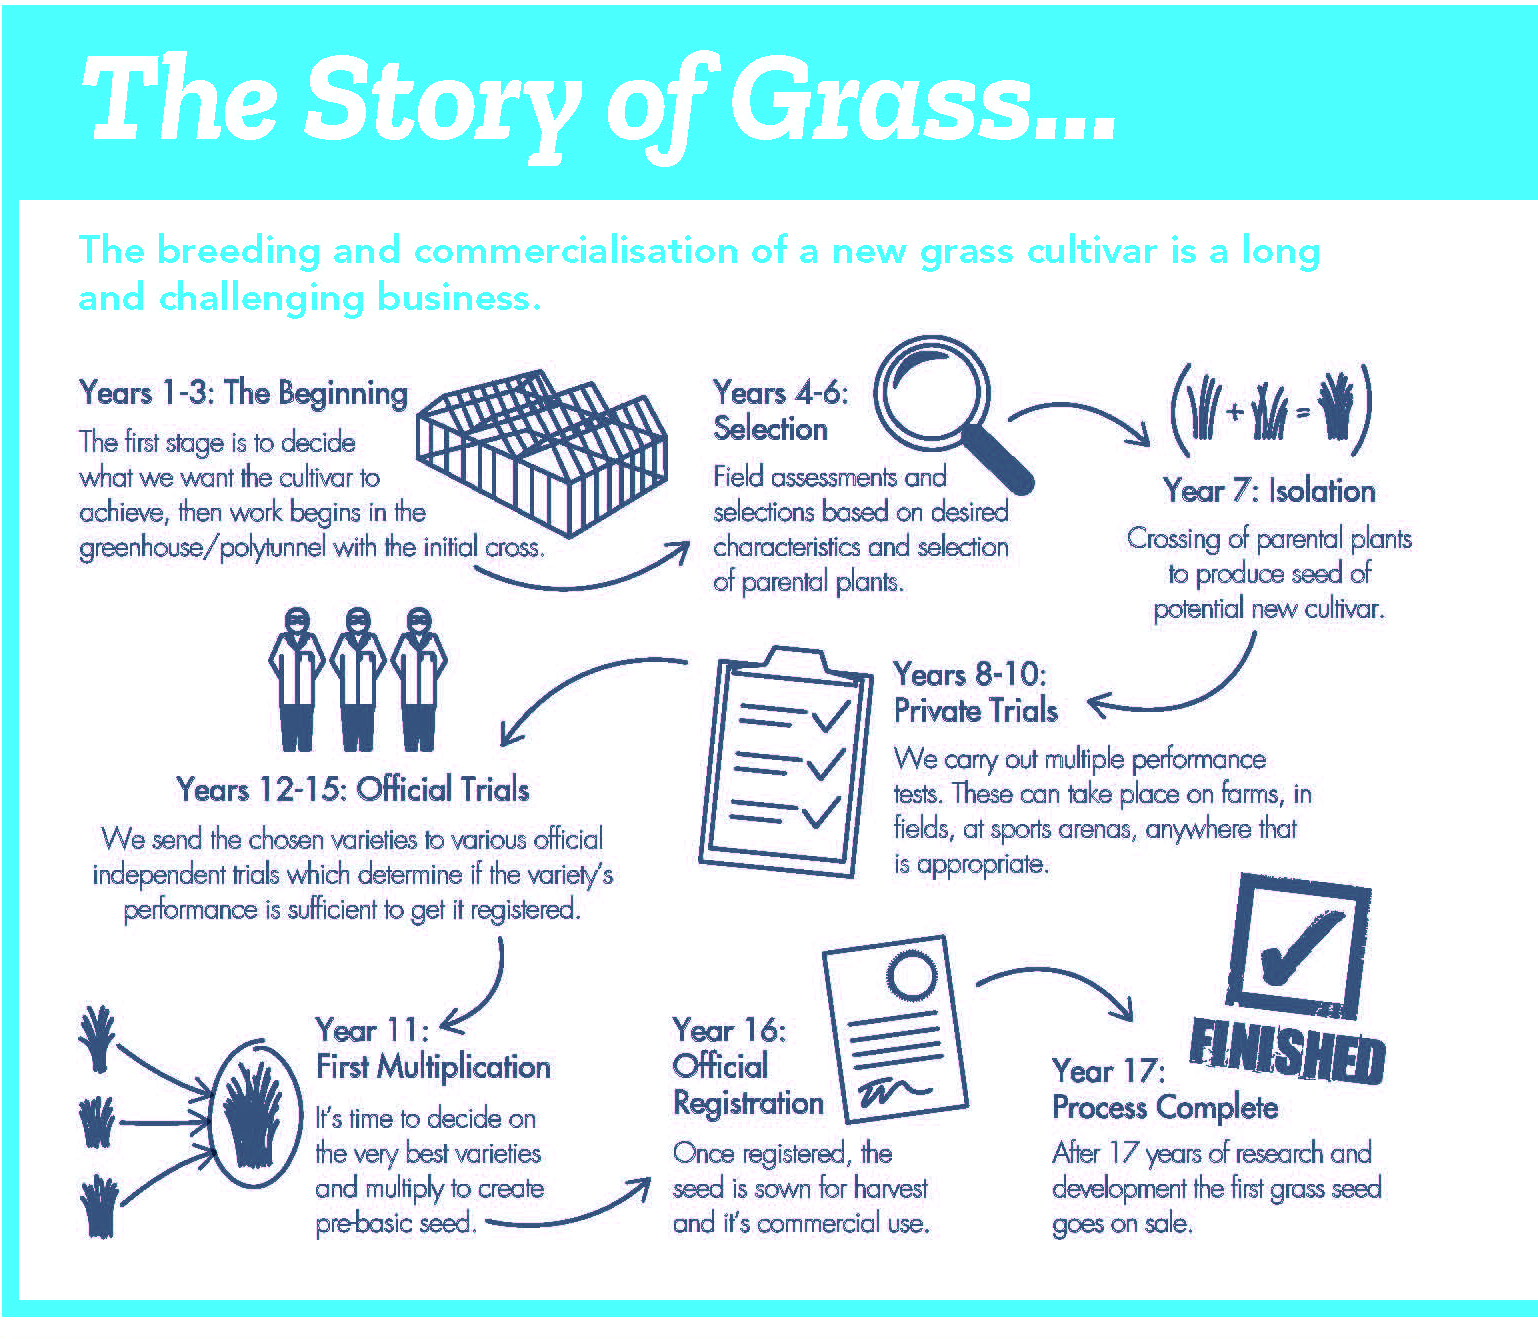 The story of grass.jpg